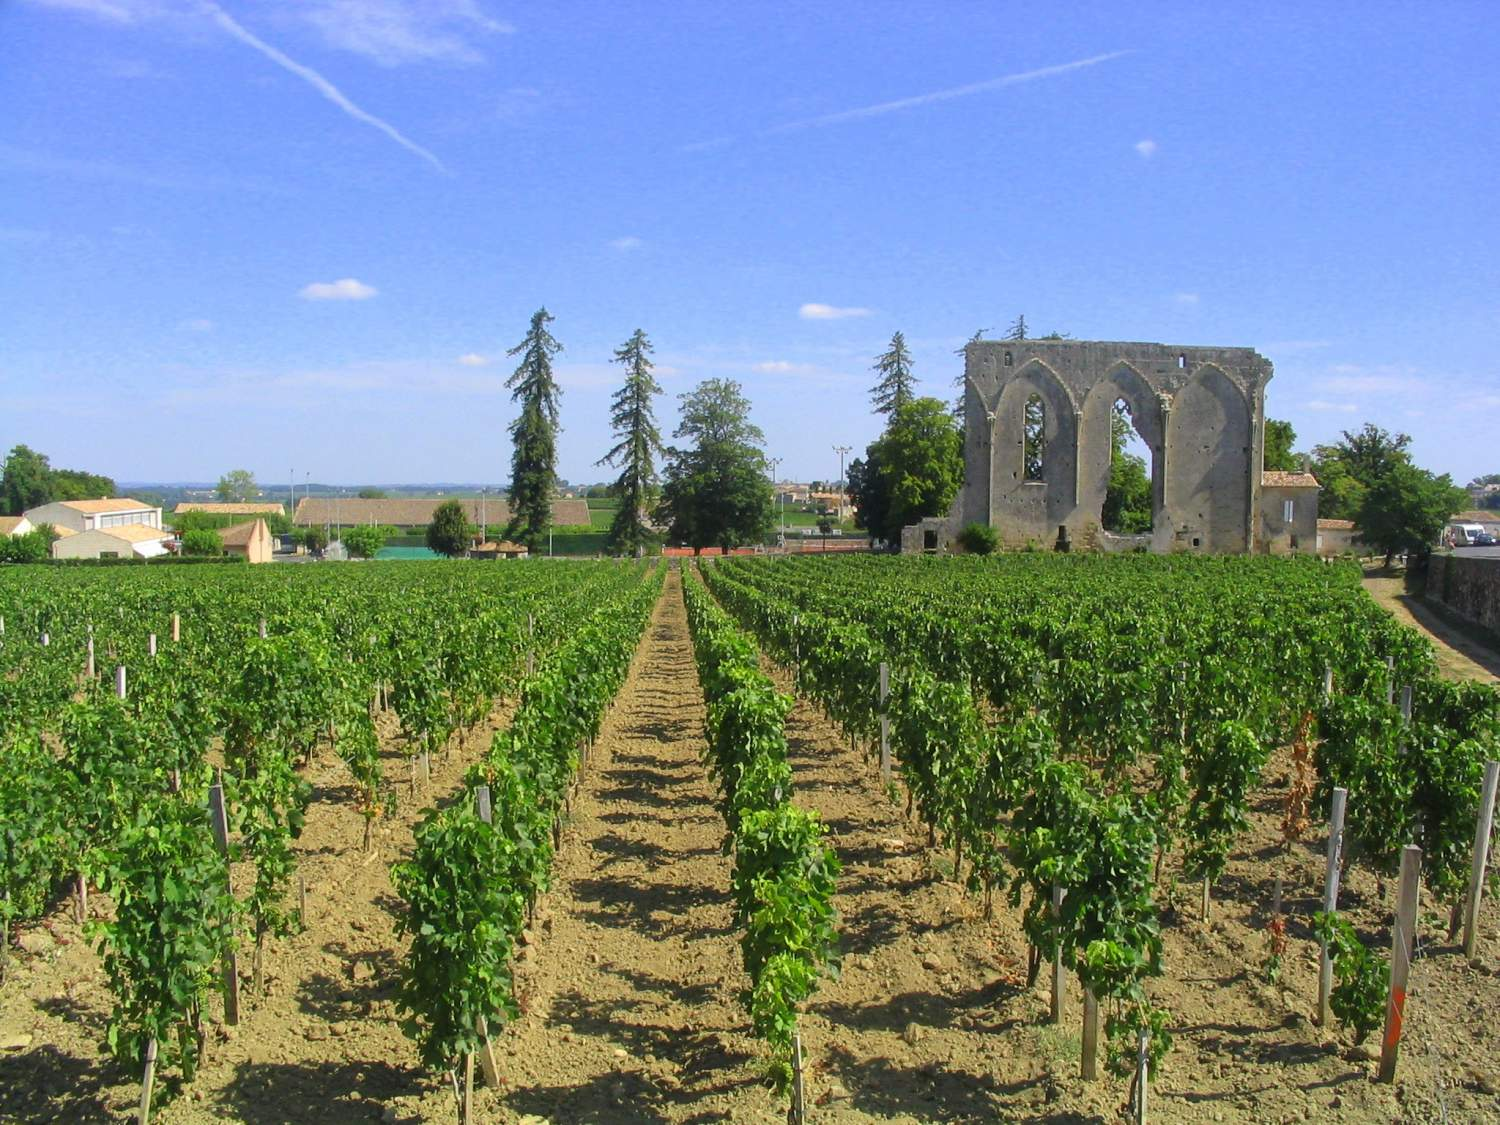 Vignoble à Saint-Émilion, France